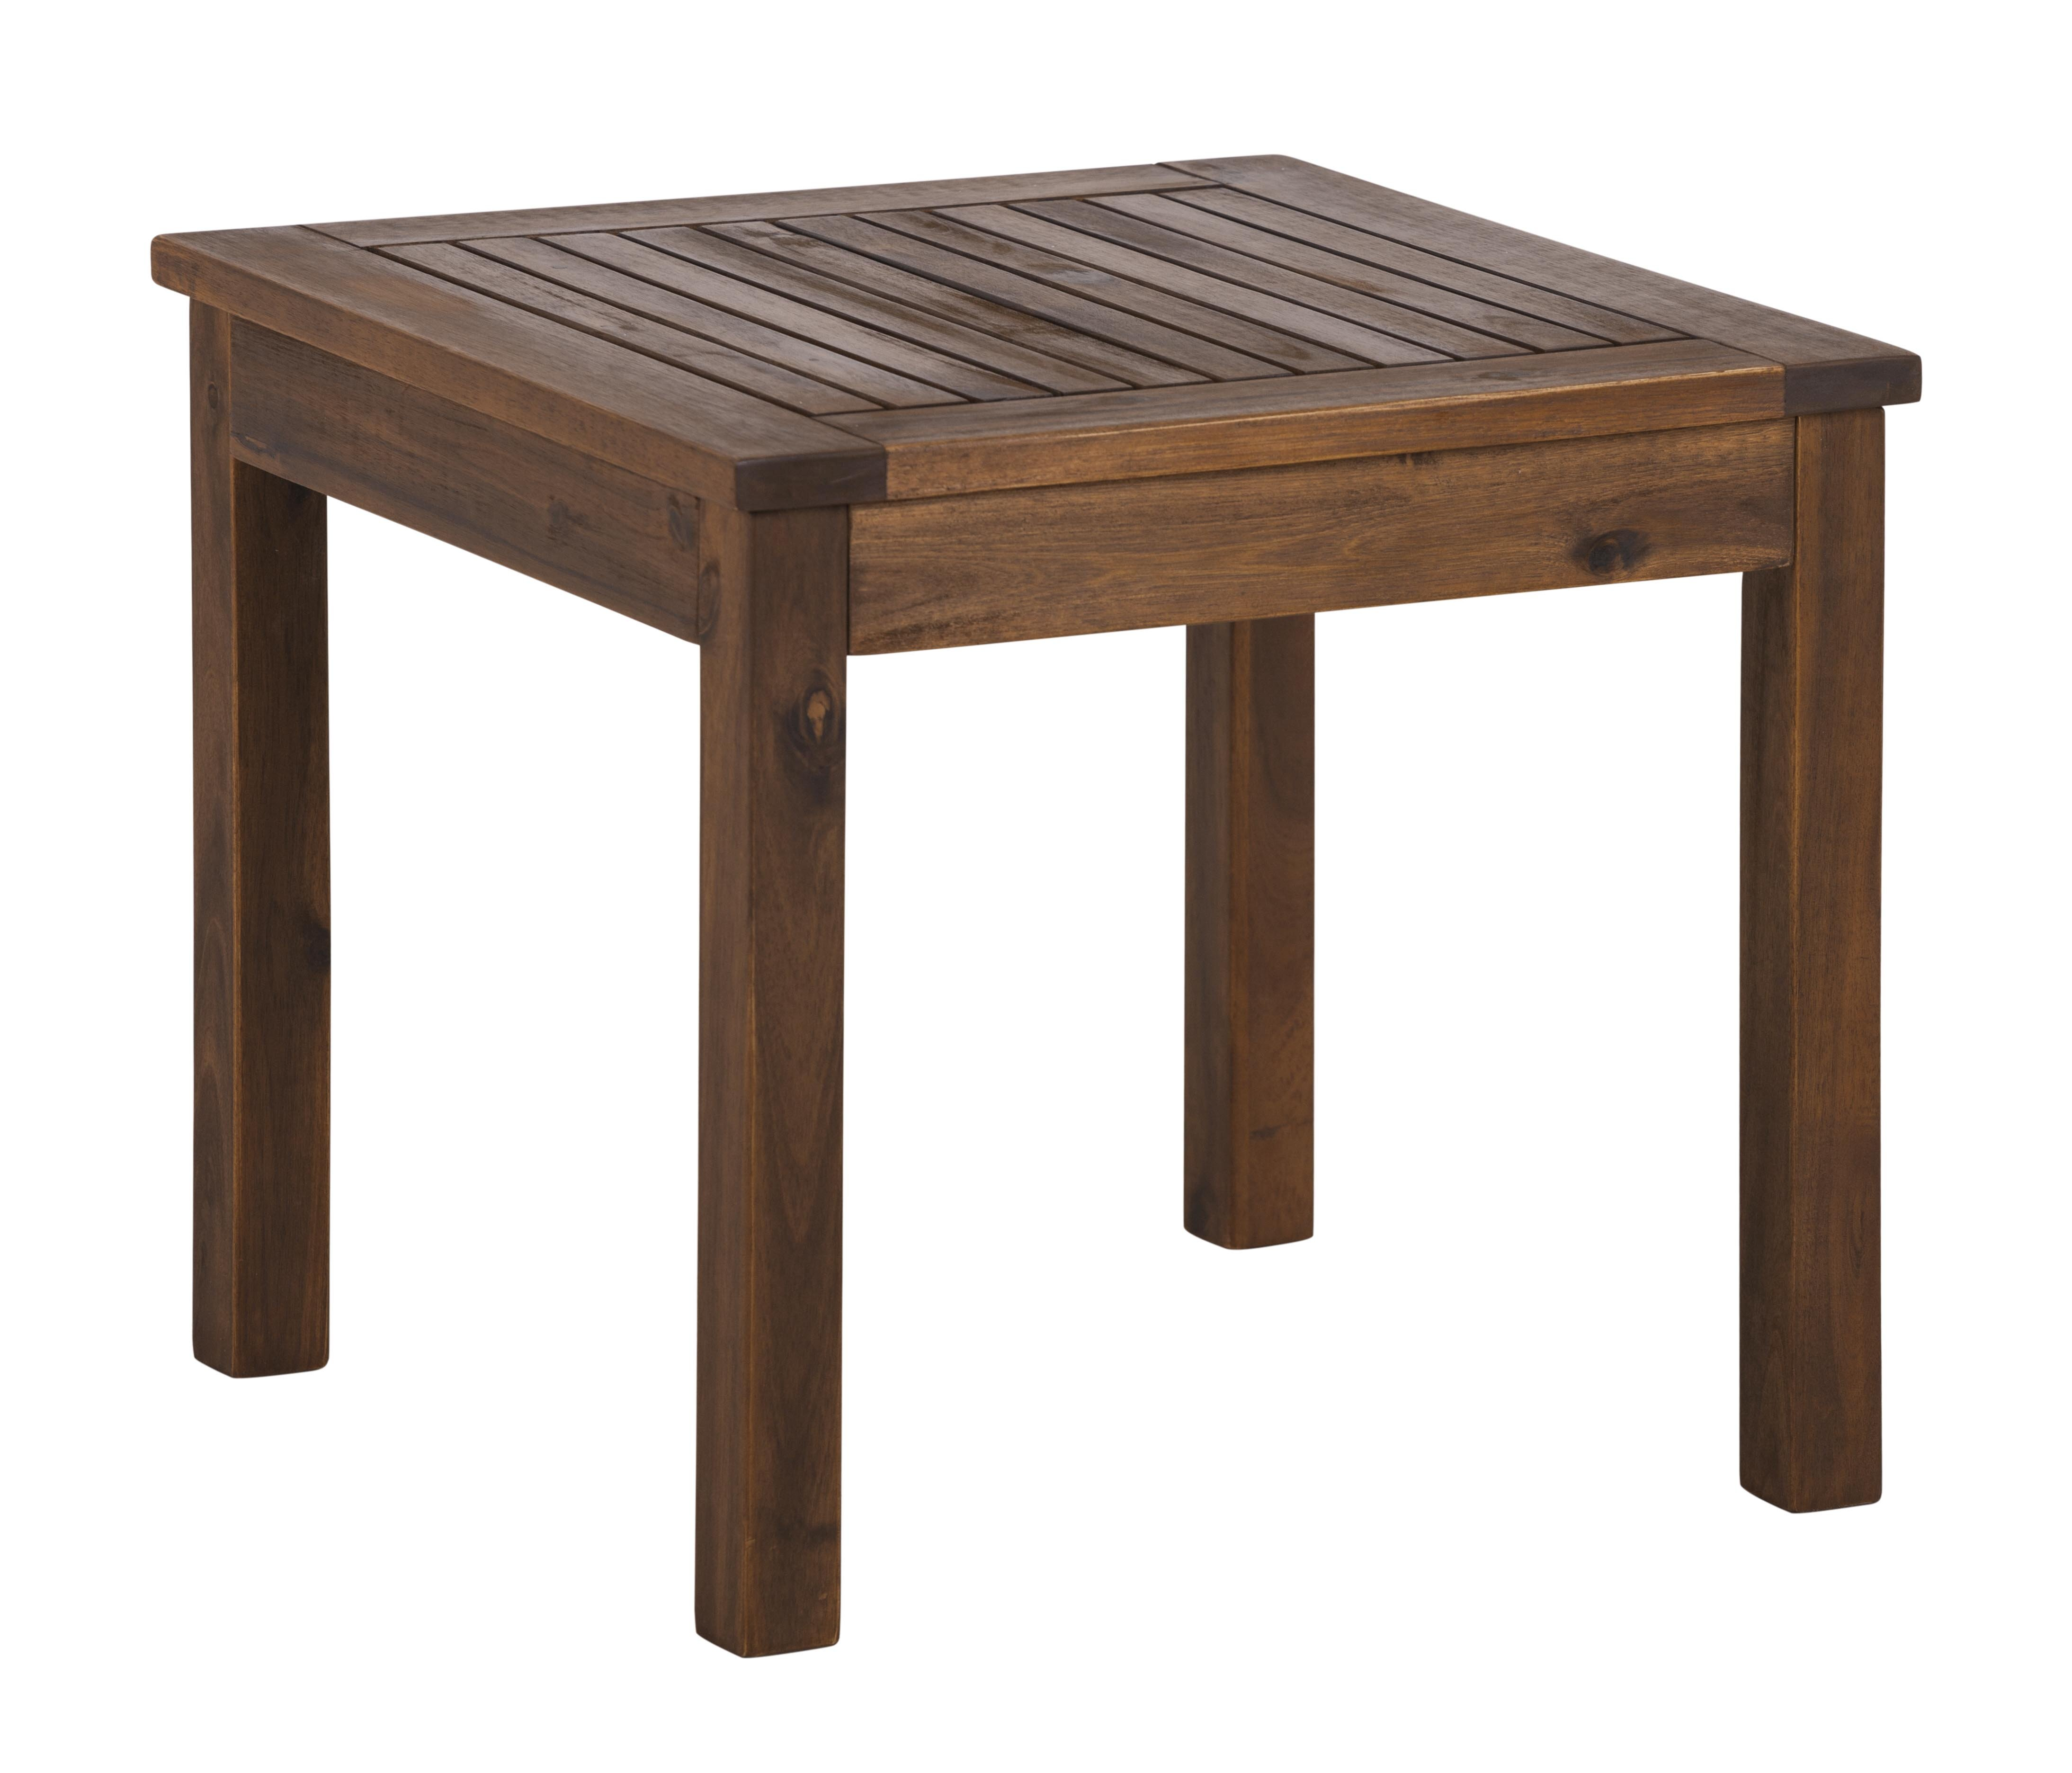 Ordinaire Union Rustic Luyster Wooden Side Table U0026 Reviews | Wayfair